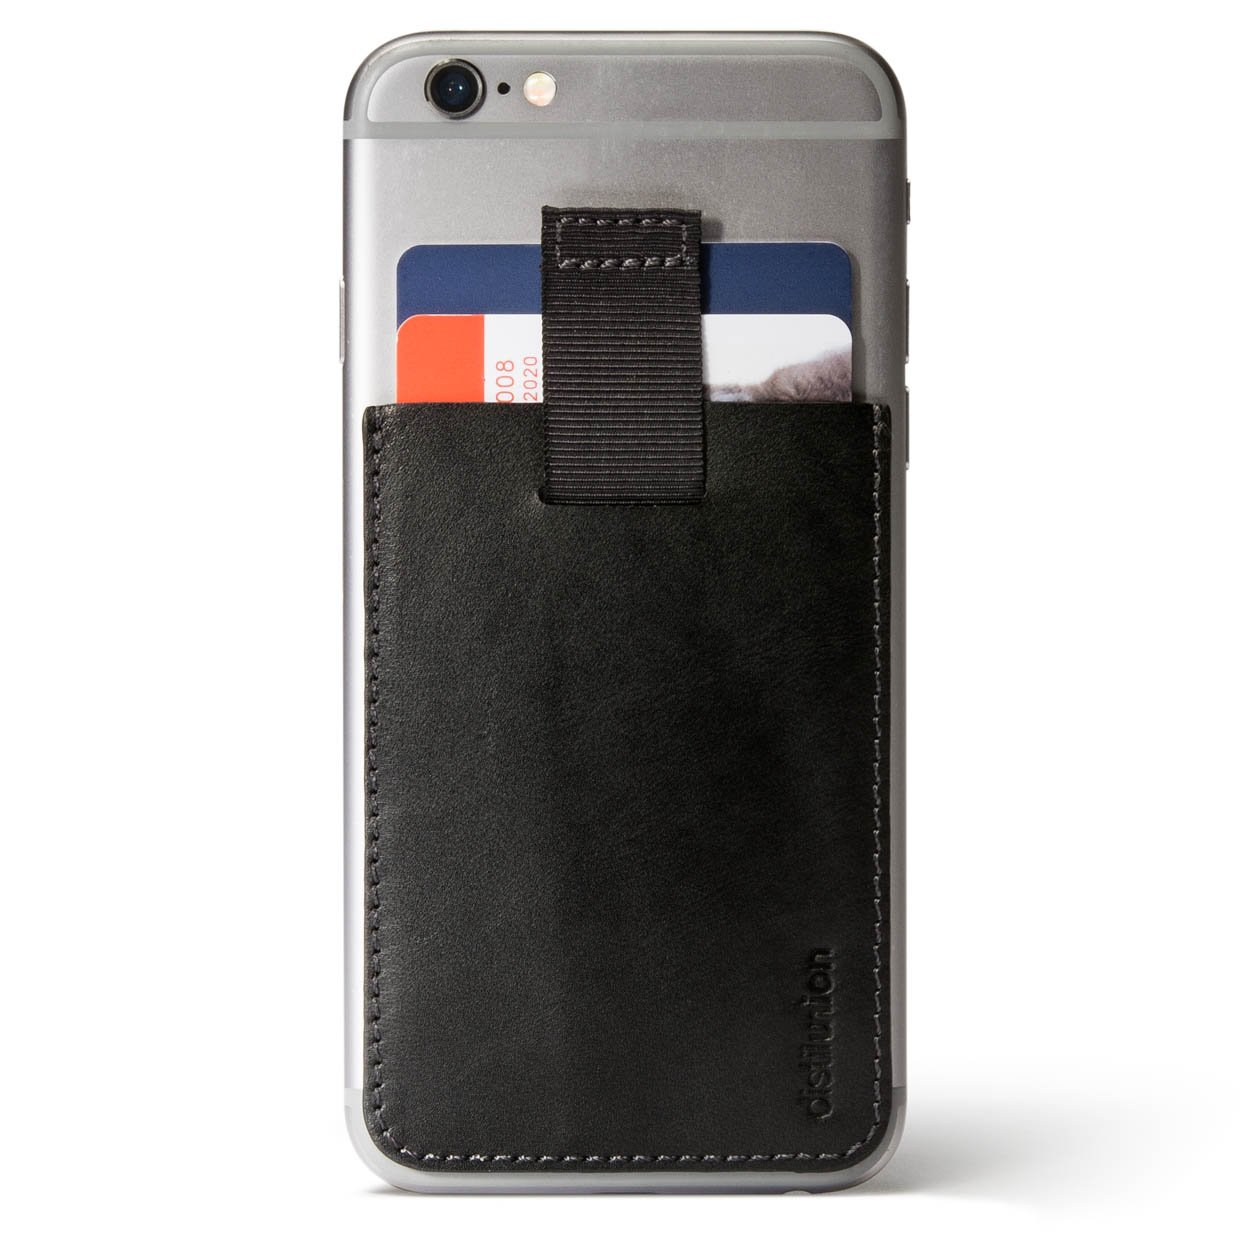 Distil Union Wally Junior - Slim, Secret Leather Wallet and Card Holder for Smartphones, the Only Leather Stick-On Wallet with Pull-Tab by Distil Union